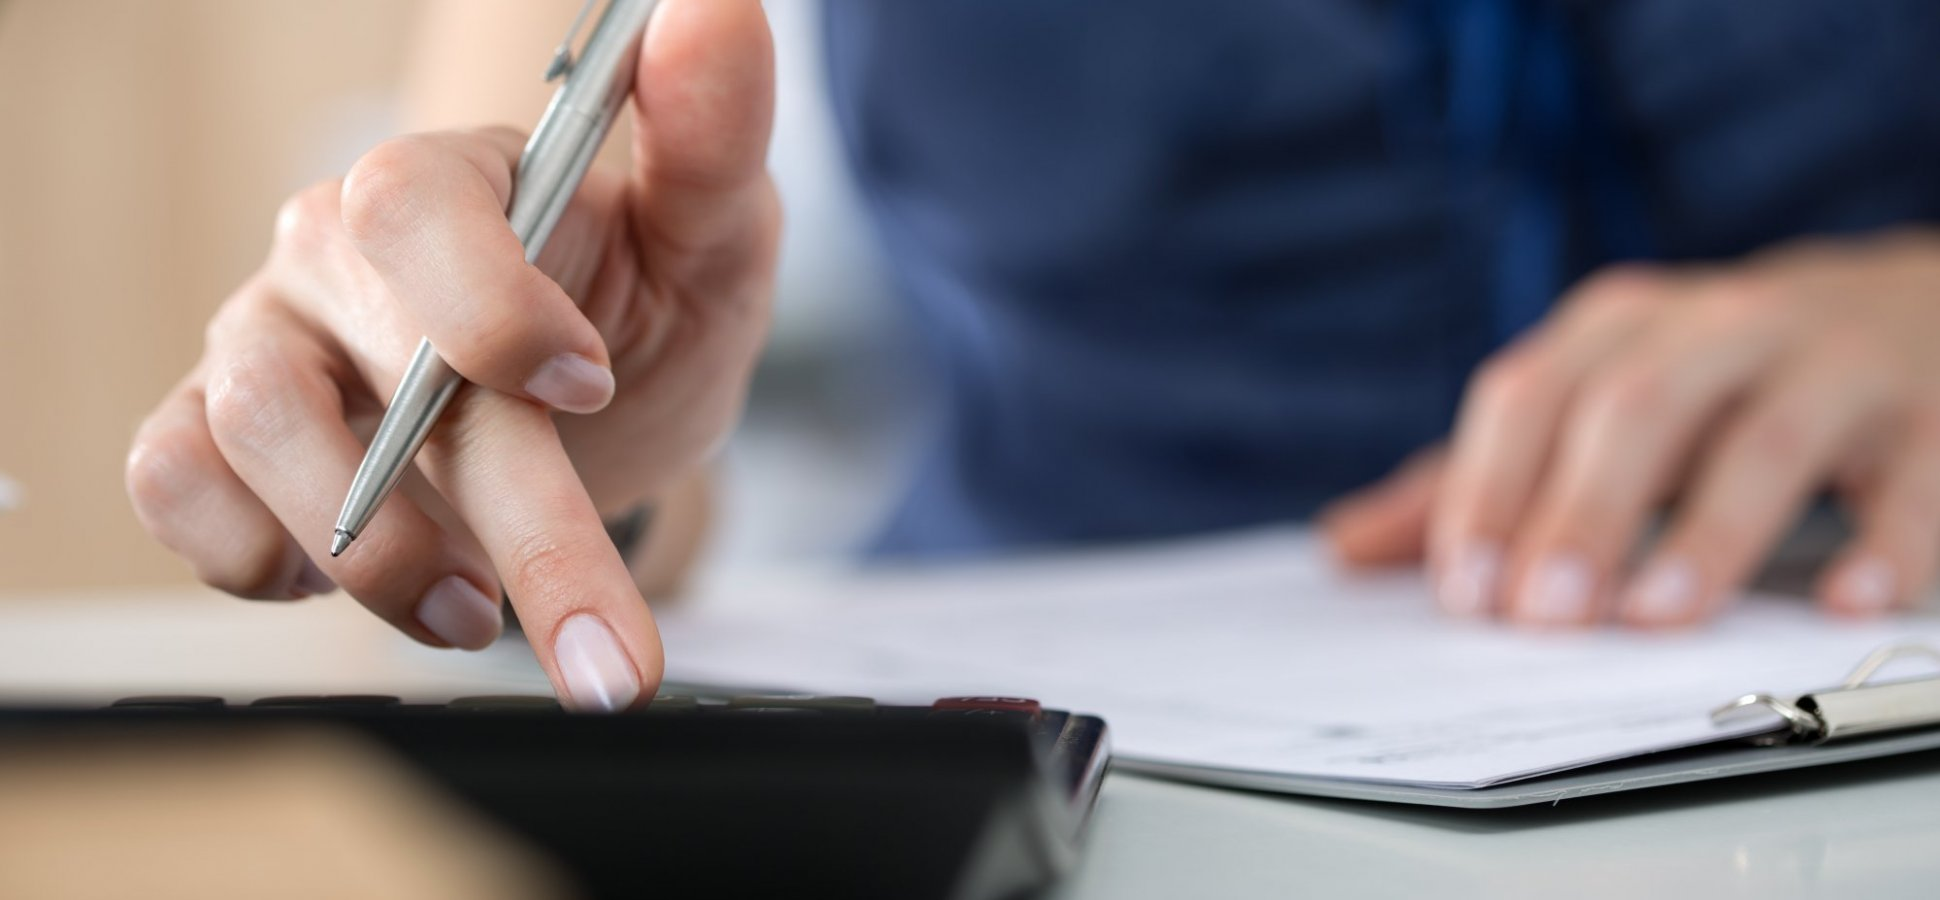 7 Important Tips to Follow When Creating a Budget (and Avoiding Pitfalls)